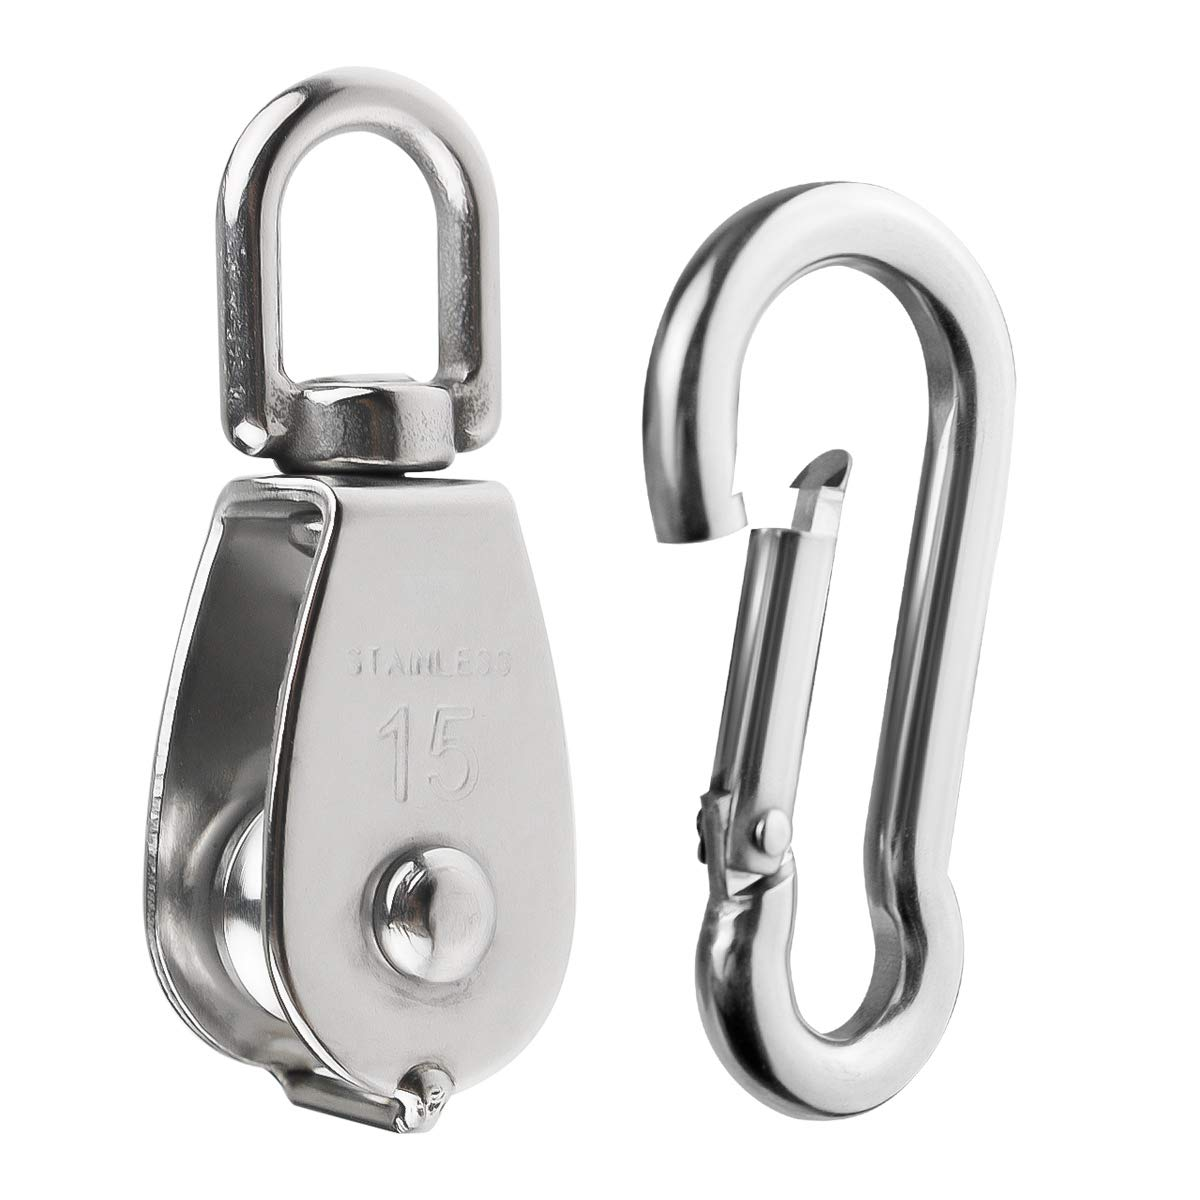 BNYZWOT 5PCS Stainless Steel Single Pulley Block M15 and 5PCS Spring Snap Hook for Wire Rope Hanging Wire Towing Wheel